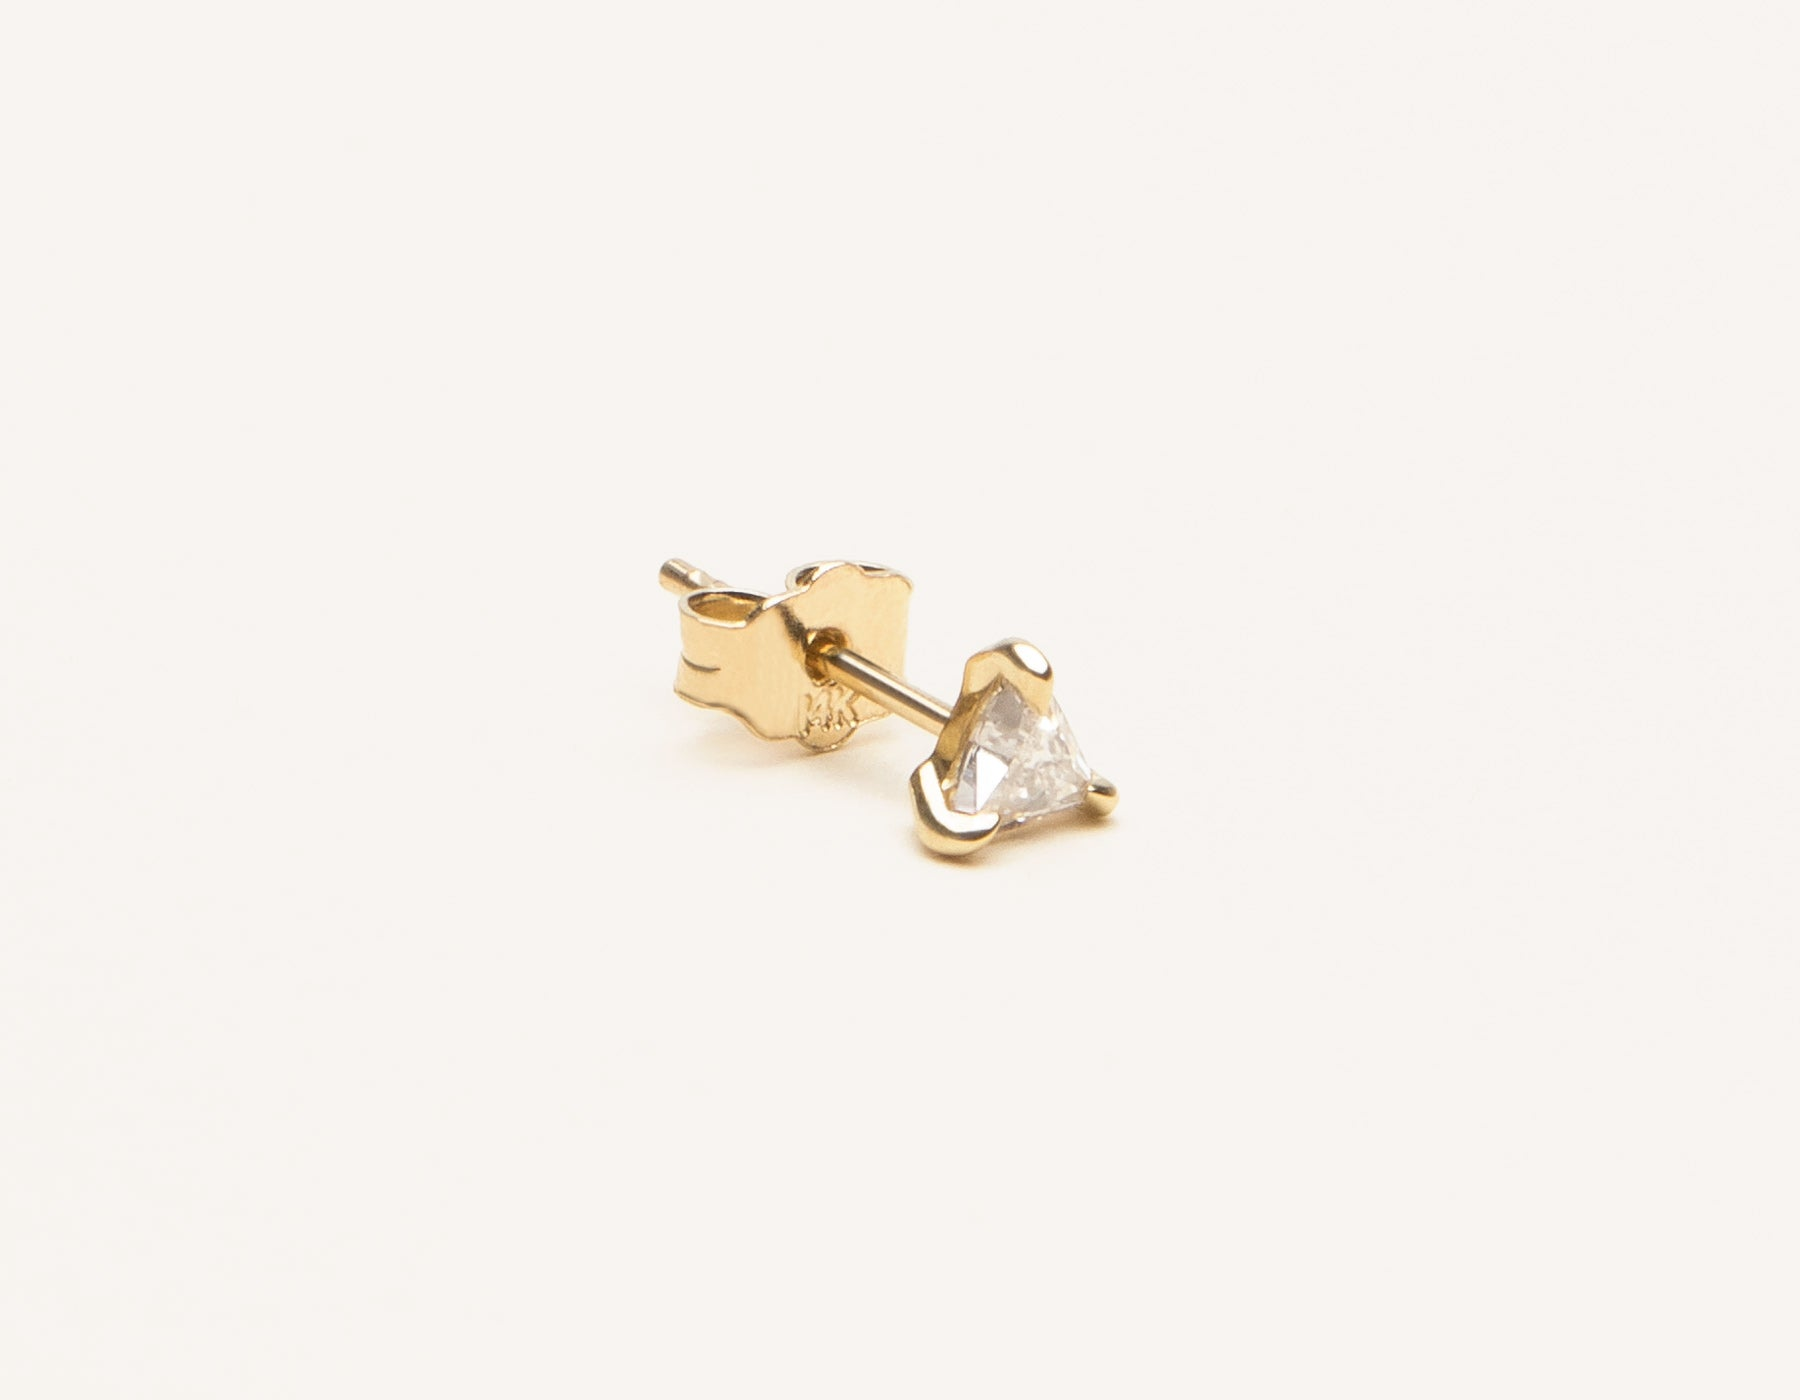 Simple unique 14k solid gold Trillion Diamond Stud Earring by Vrai and Oro, 14K Yellow Gold